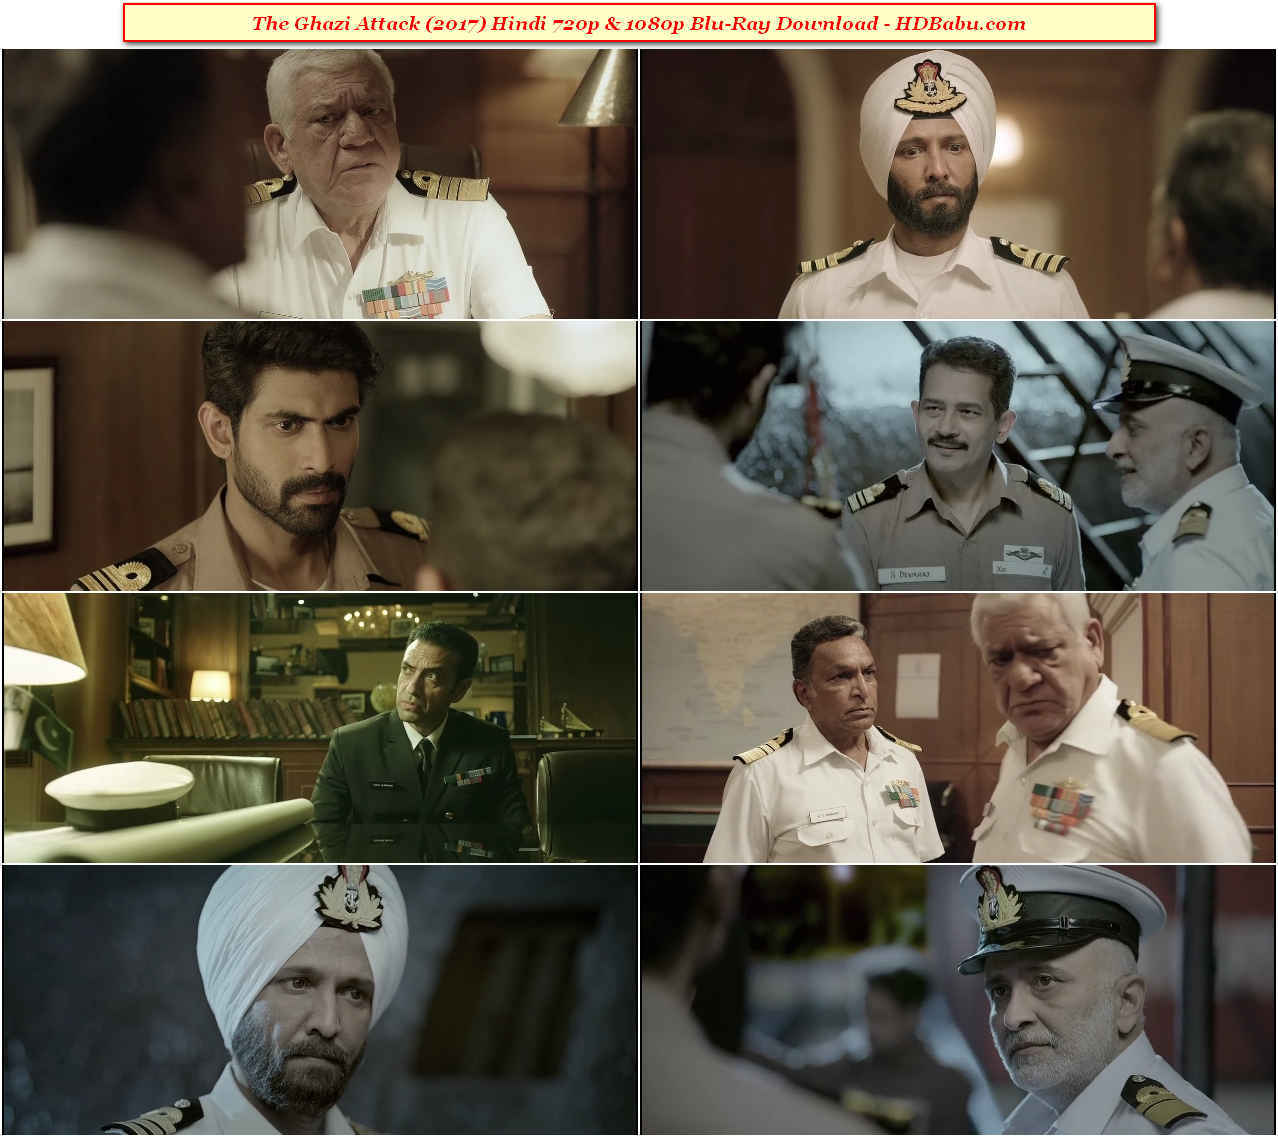 The Ghazi Attack Movie Download. The Ghazi Attack Movie Download free hd 720p, download free The Ghazi Attack full movie hd download, the Ghazi Attack hd full movie download free 1080p, The Ghazi Attack hindi full movie 1080p blu-ray download, Download the Ghazi Attack hindi full movie 720p hd.